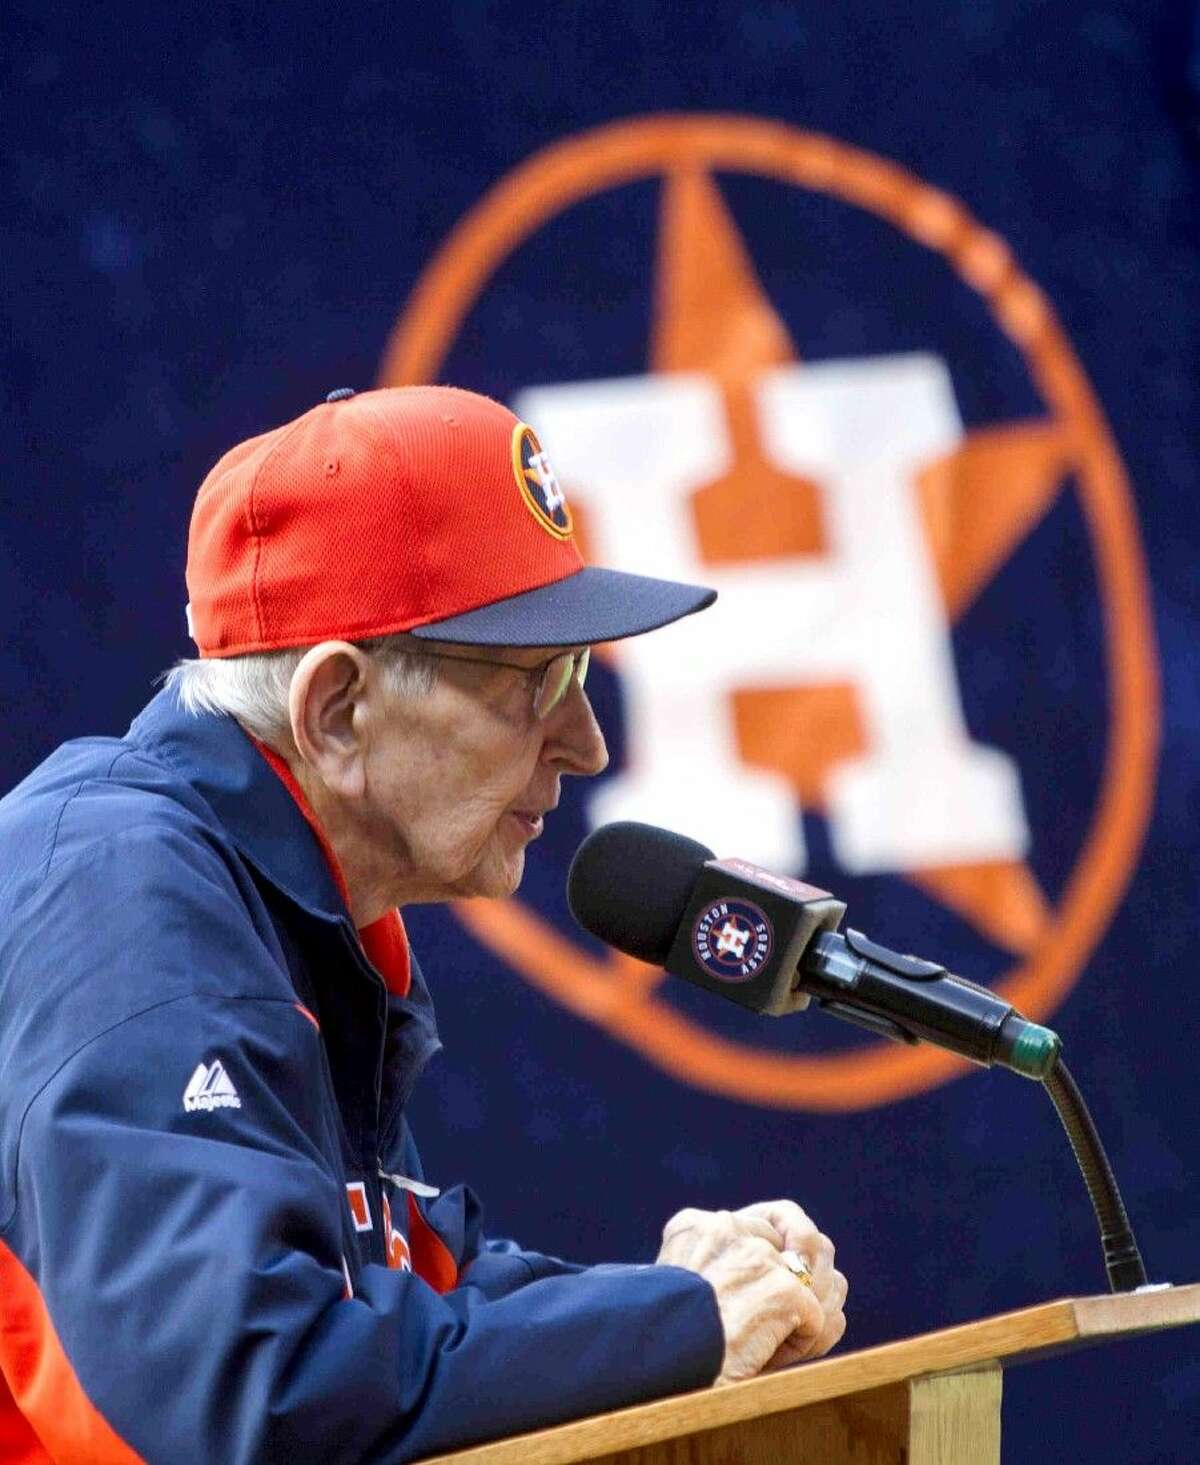 Hall of Fame broadcaster Milo Hamilton speaks to a crowd during an Opening Day game against the Cleveland Indians on April 6, 2015.